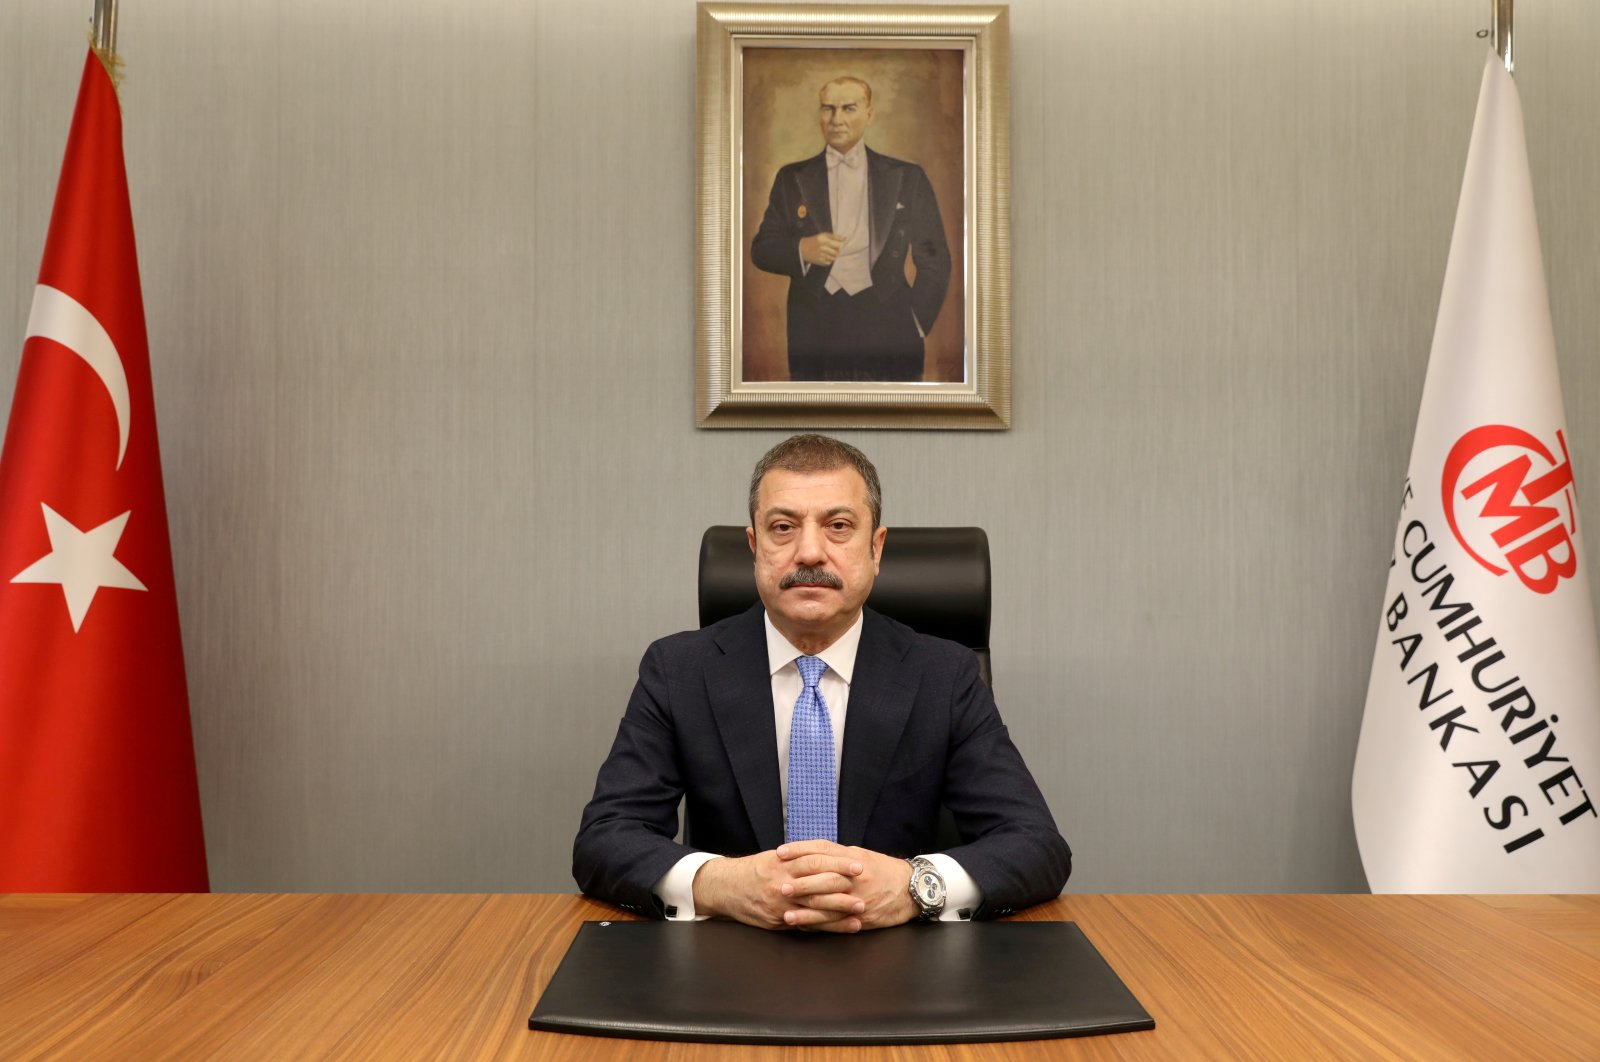 Central Bank of the Republic of Turkey (CBRT) Governor Şahap Kavcıoğlu sits at his office in the capital Ankara, Turkey, March 21, 2021. (CBRT via Reuters)